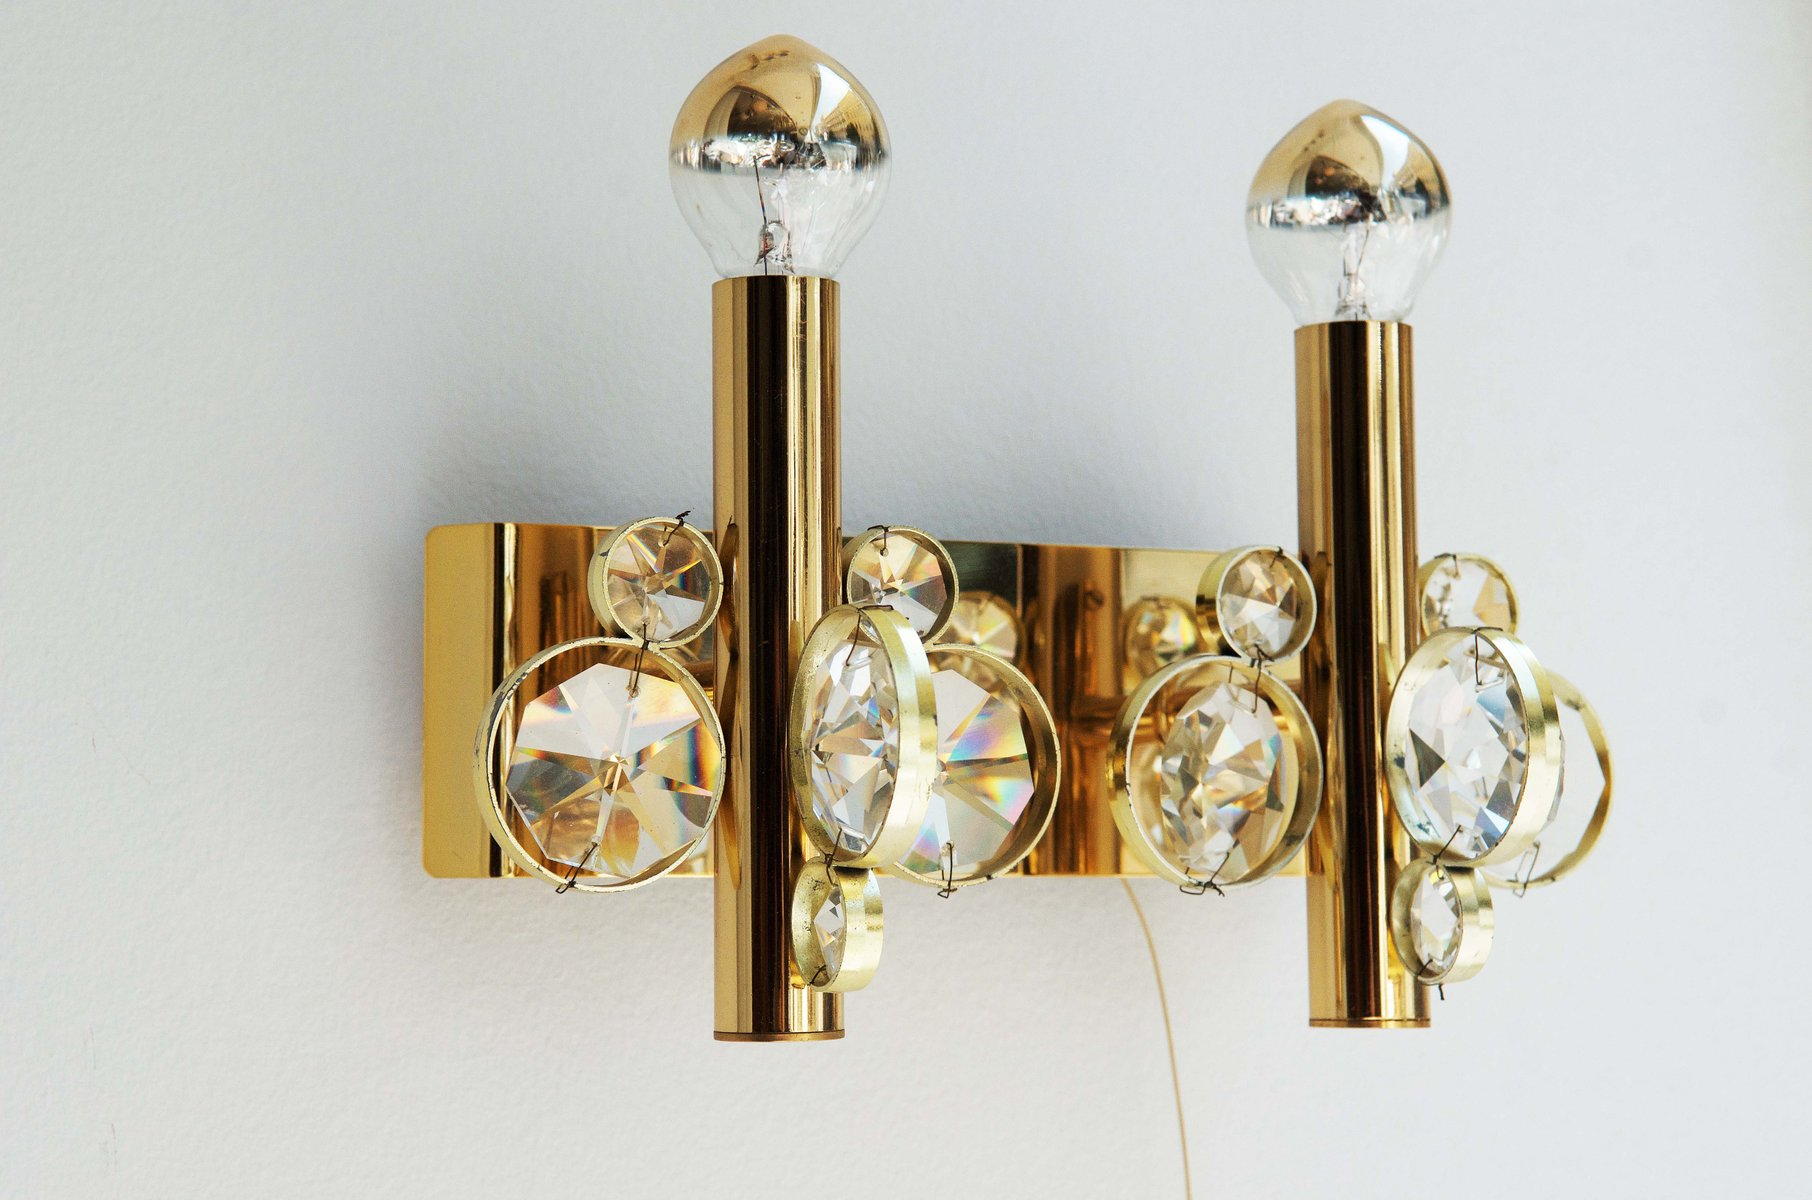 Vintage Cut Crystal Wall Sconce for sale at Pamono